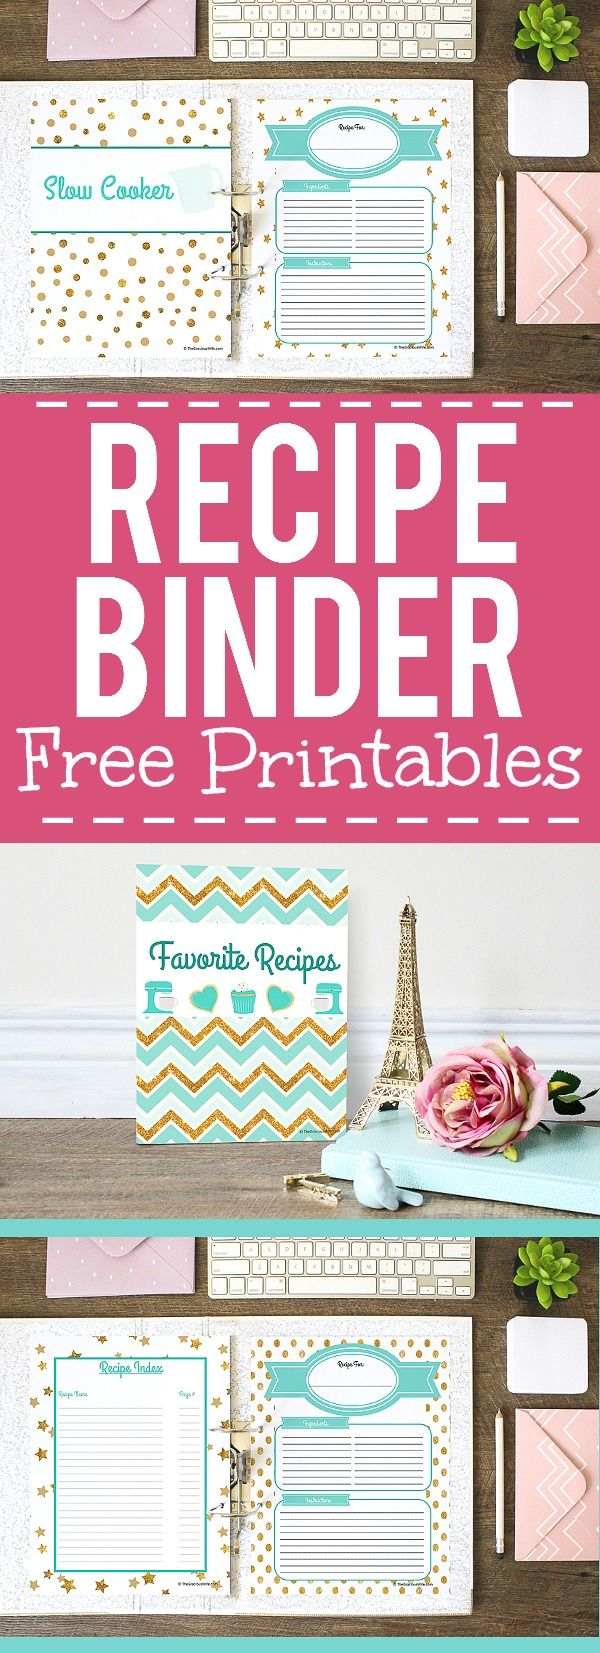 25 best ideas about cookbook template on pinterest for Homemade cookbooks template